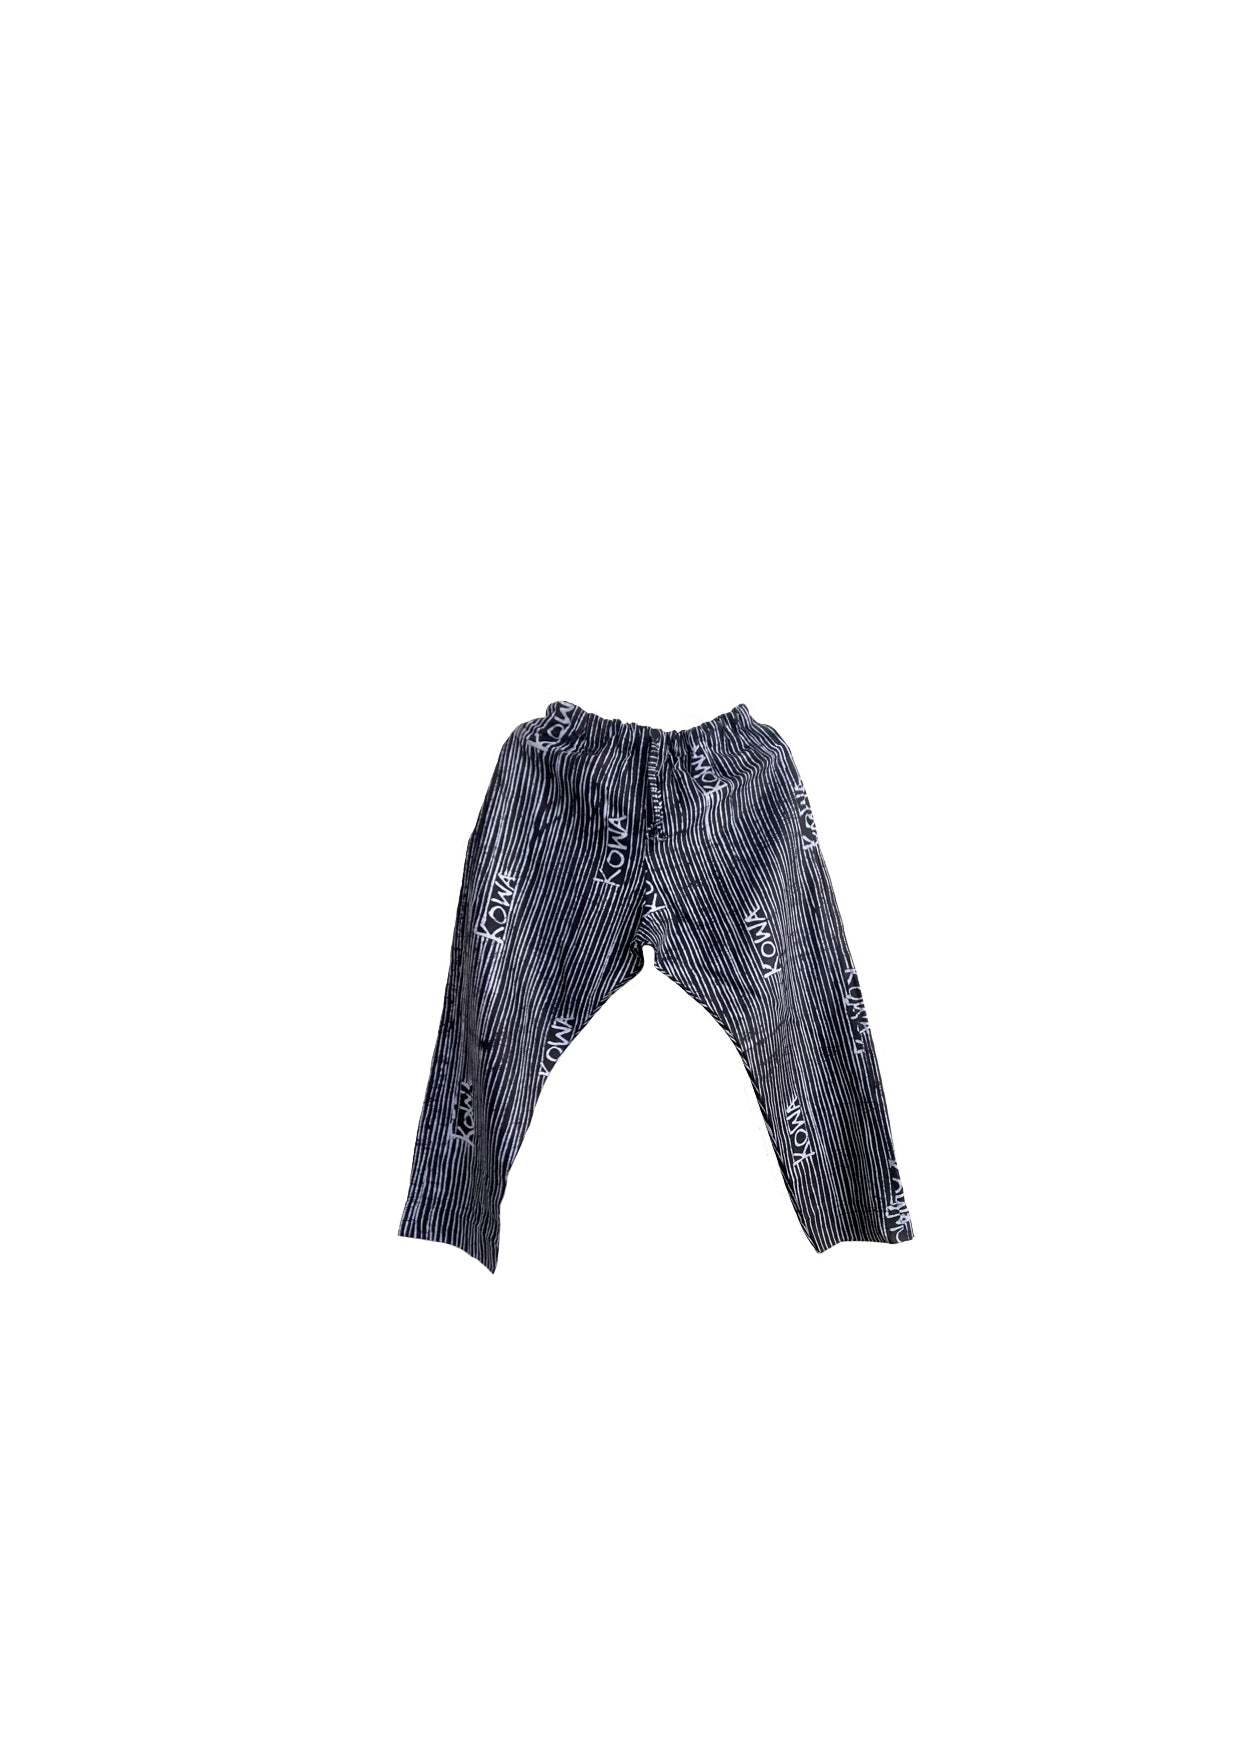 Trousers- Indigo and white kowa lines